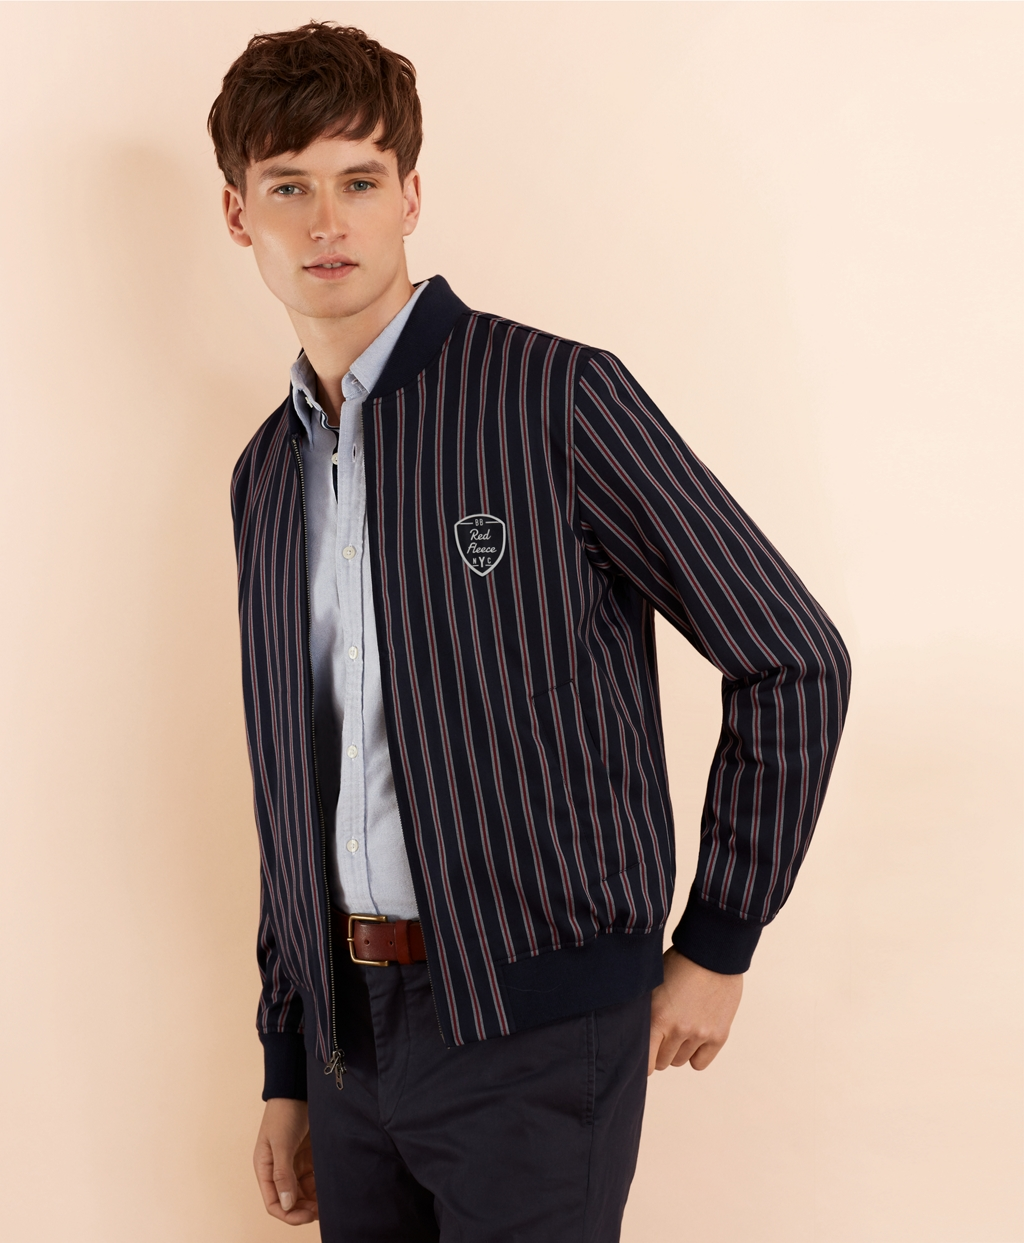 60s 70s Men's Jackets & Sweaters Brooks Brothers Mens Striped Bomber Jacket $159.60 AT vintagedancer.com